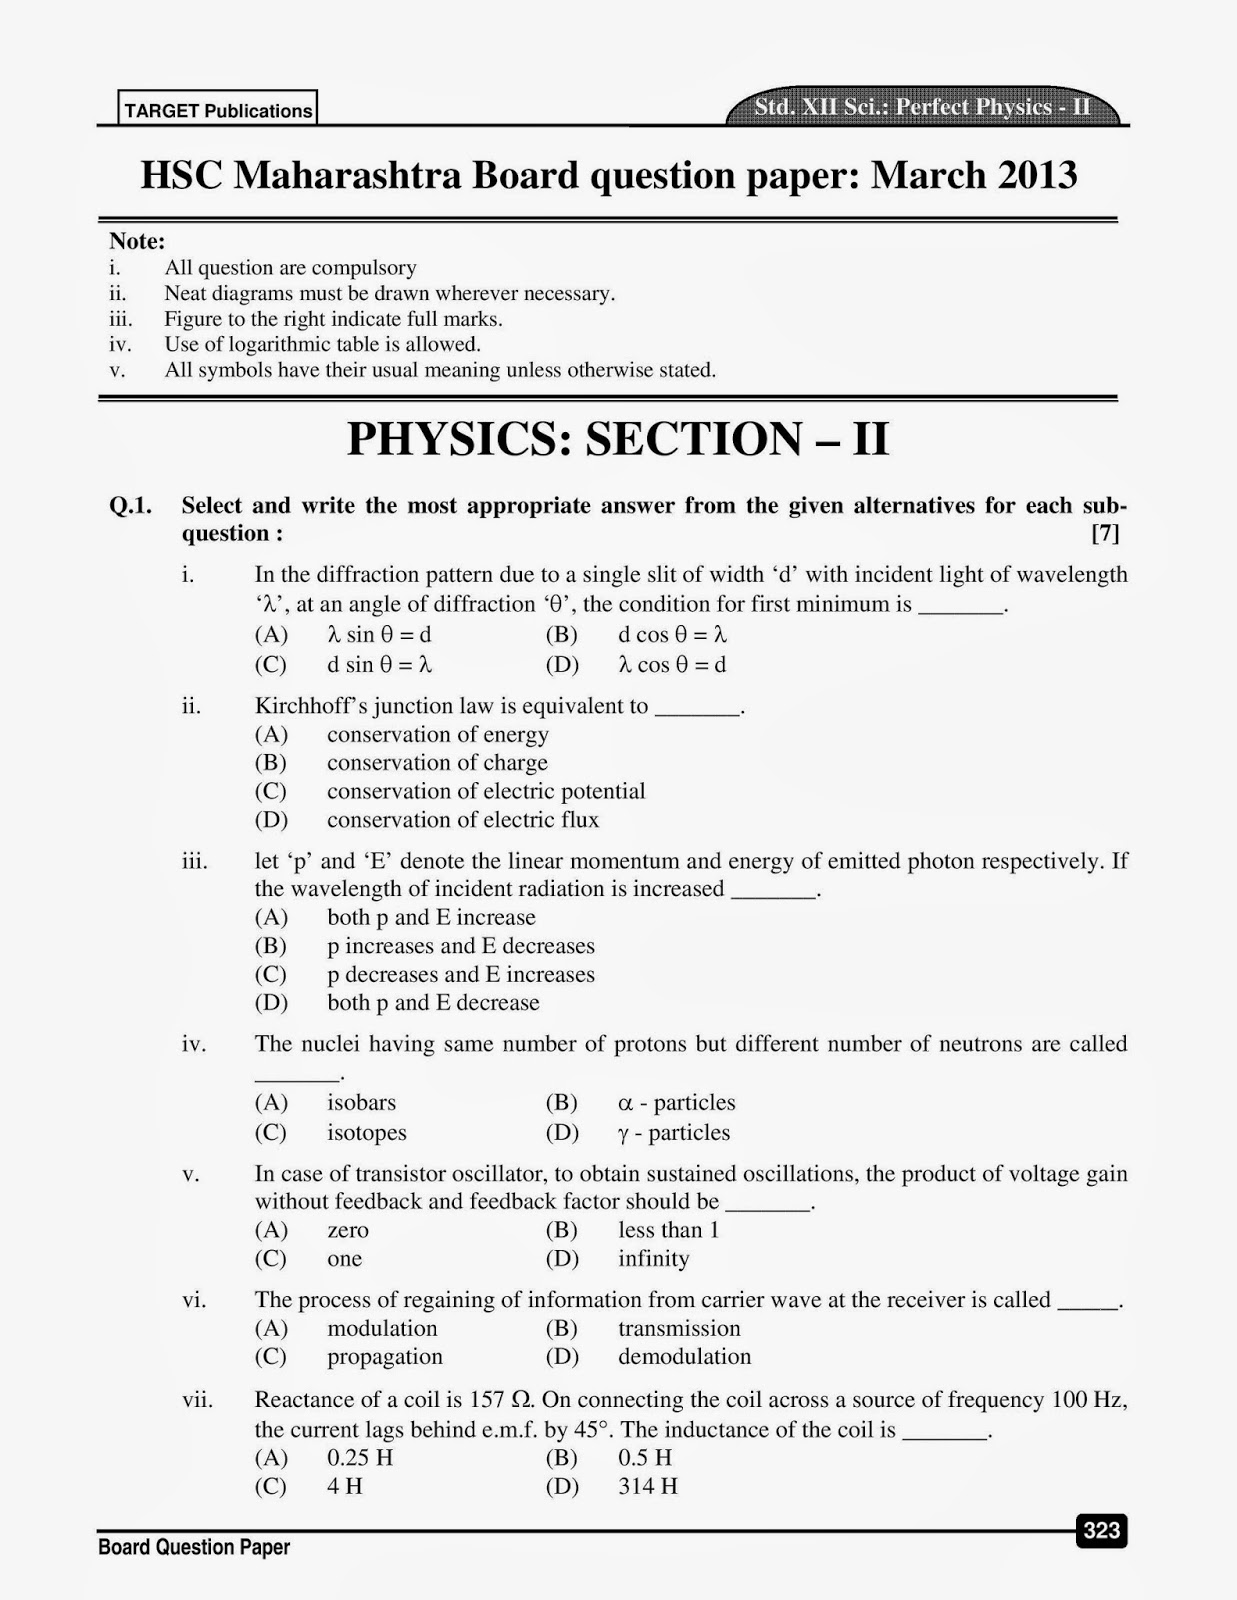 HSC BOARDS PHYSIC PAPER WITH SOLUTION | Easy Exam Preparation